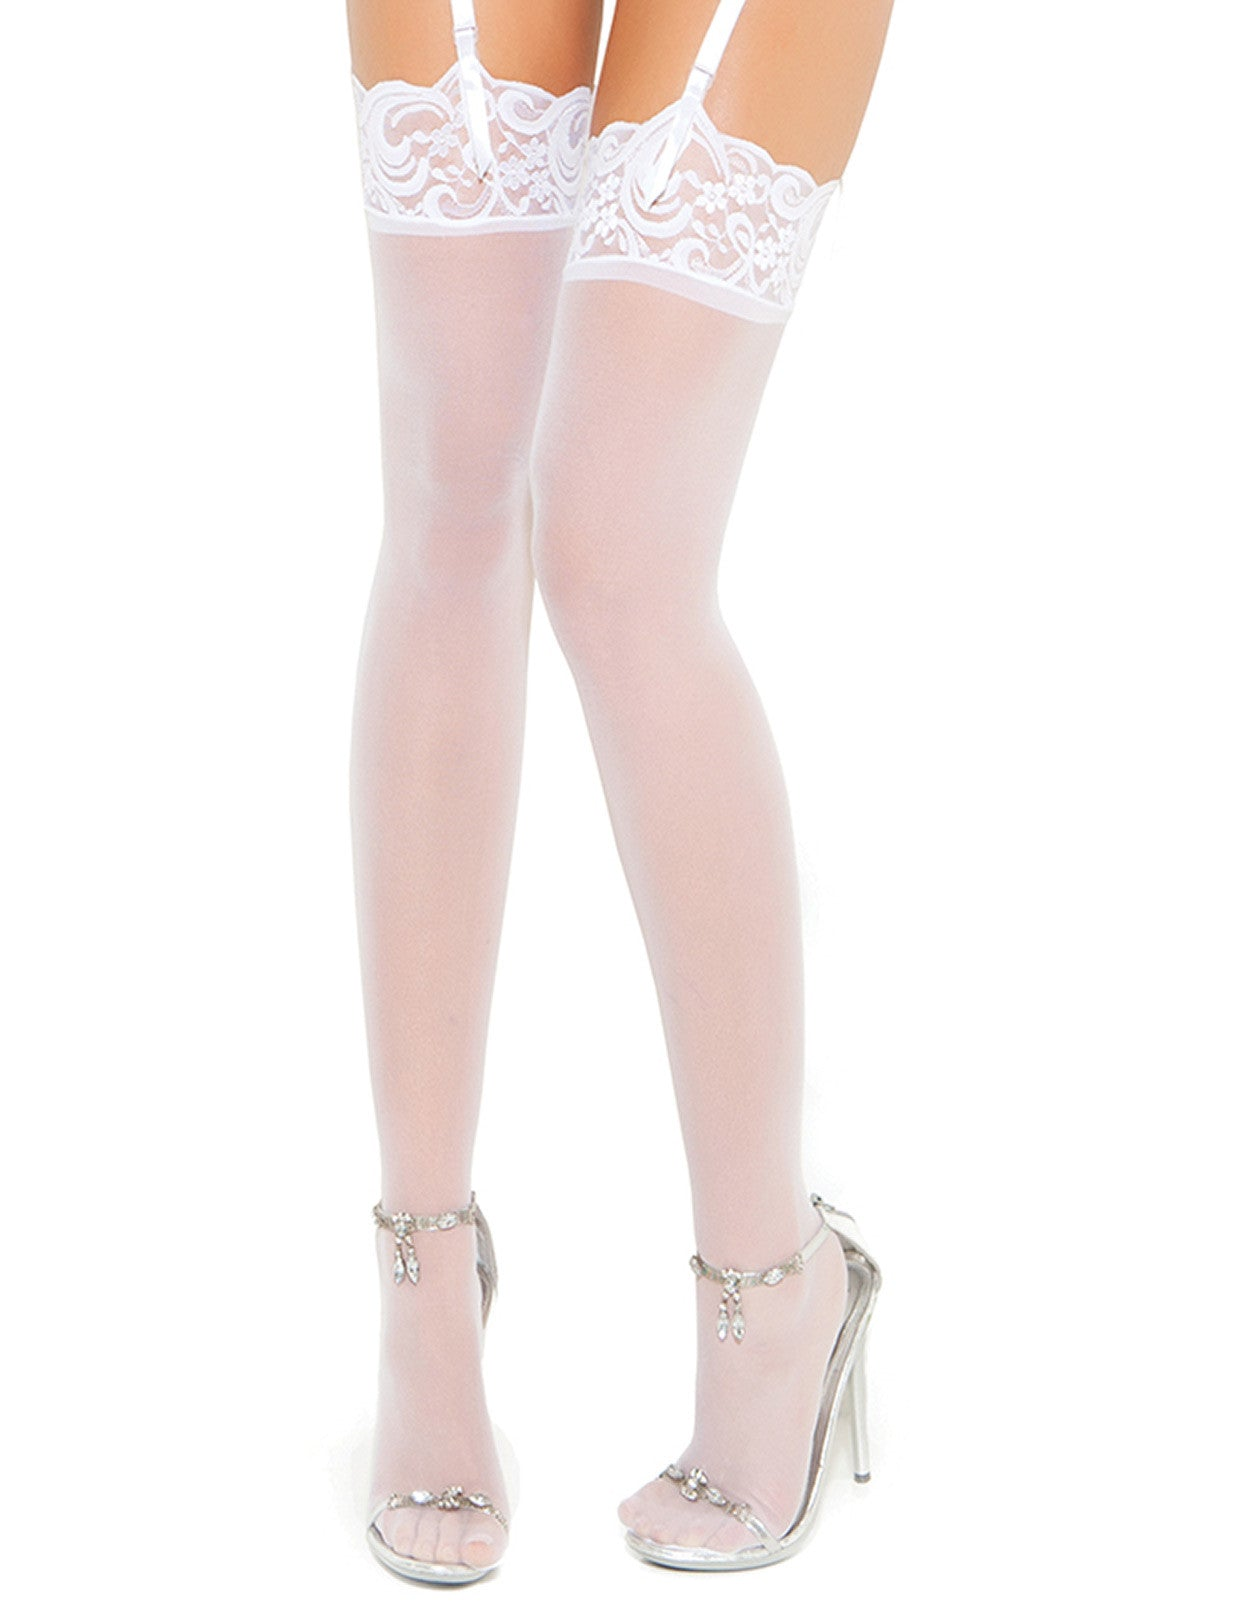 Plus Size Sheer Lace Top Thigh High